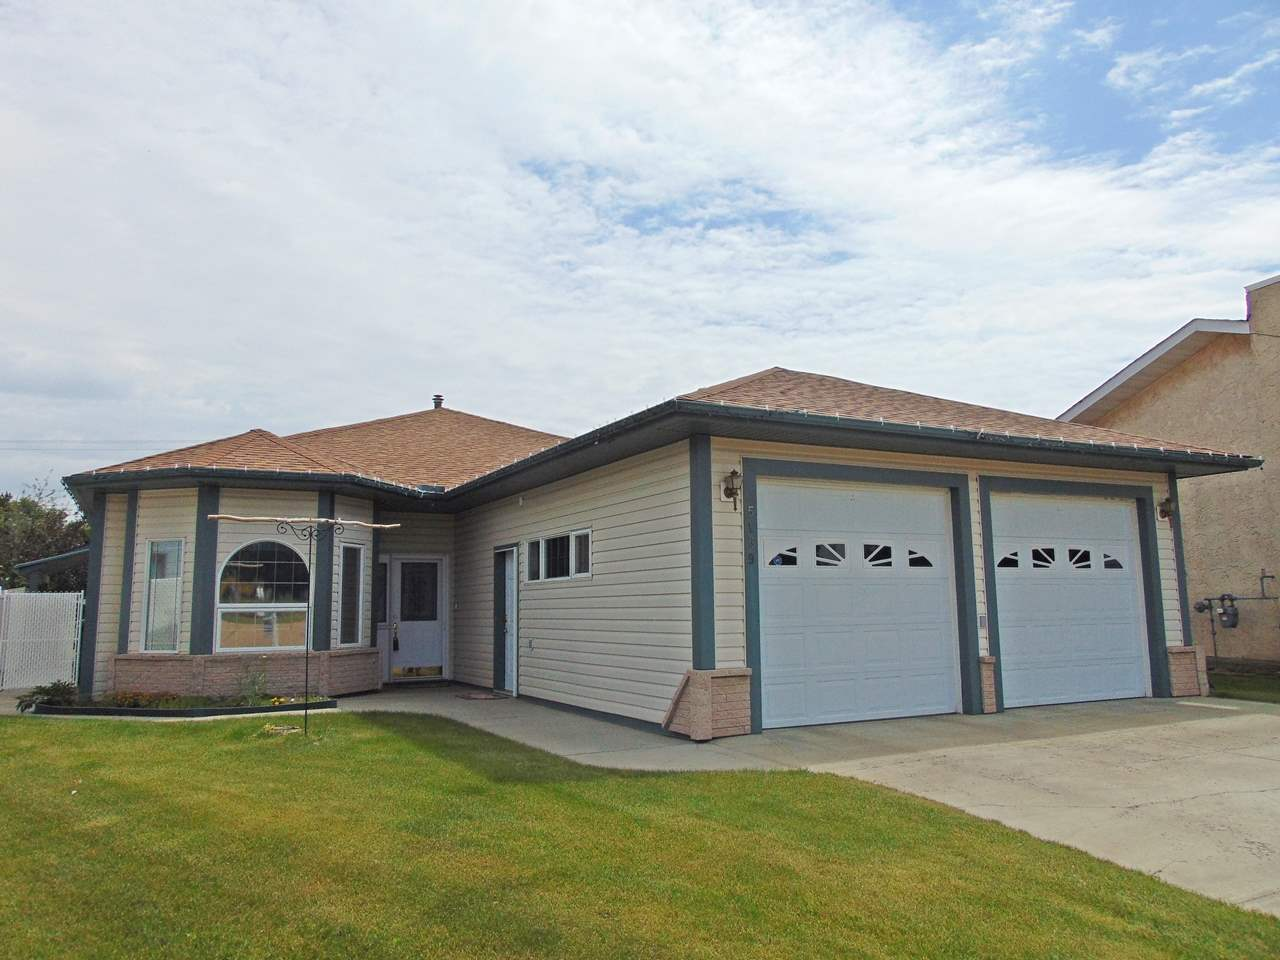 Main Photo: 5159 49 Street: Redwater House for sale : MLS(r) # E4069270